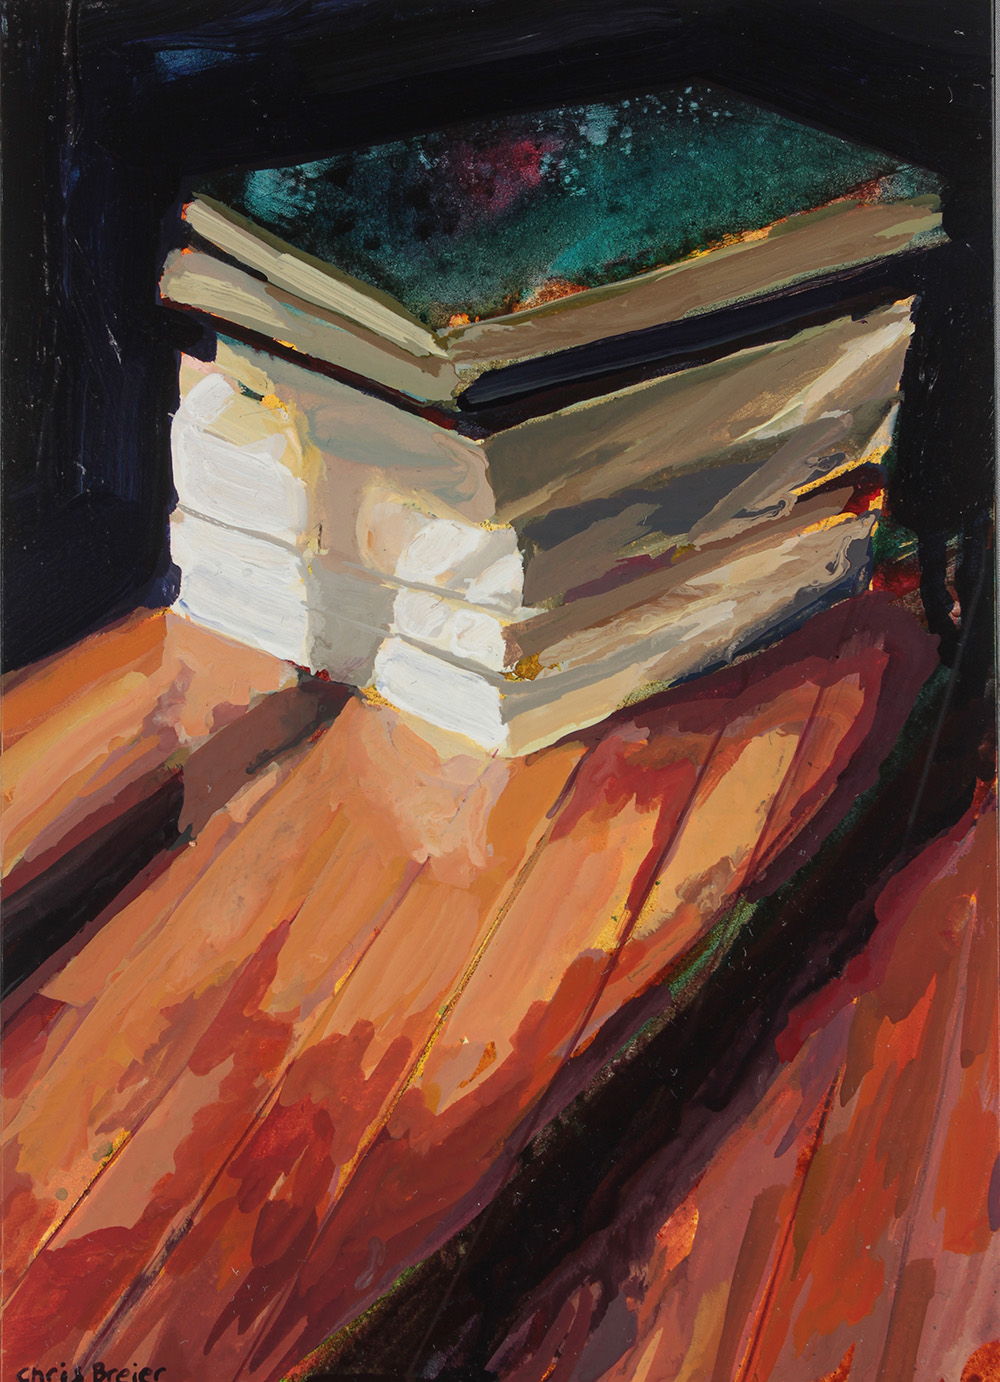 An acrylic painting of a stack of books on hardwood floors